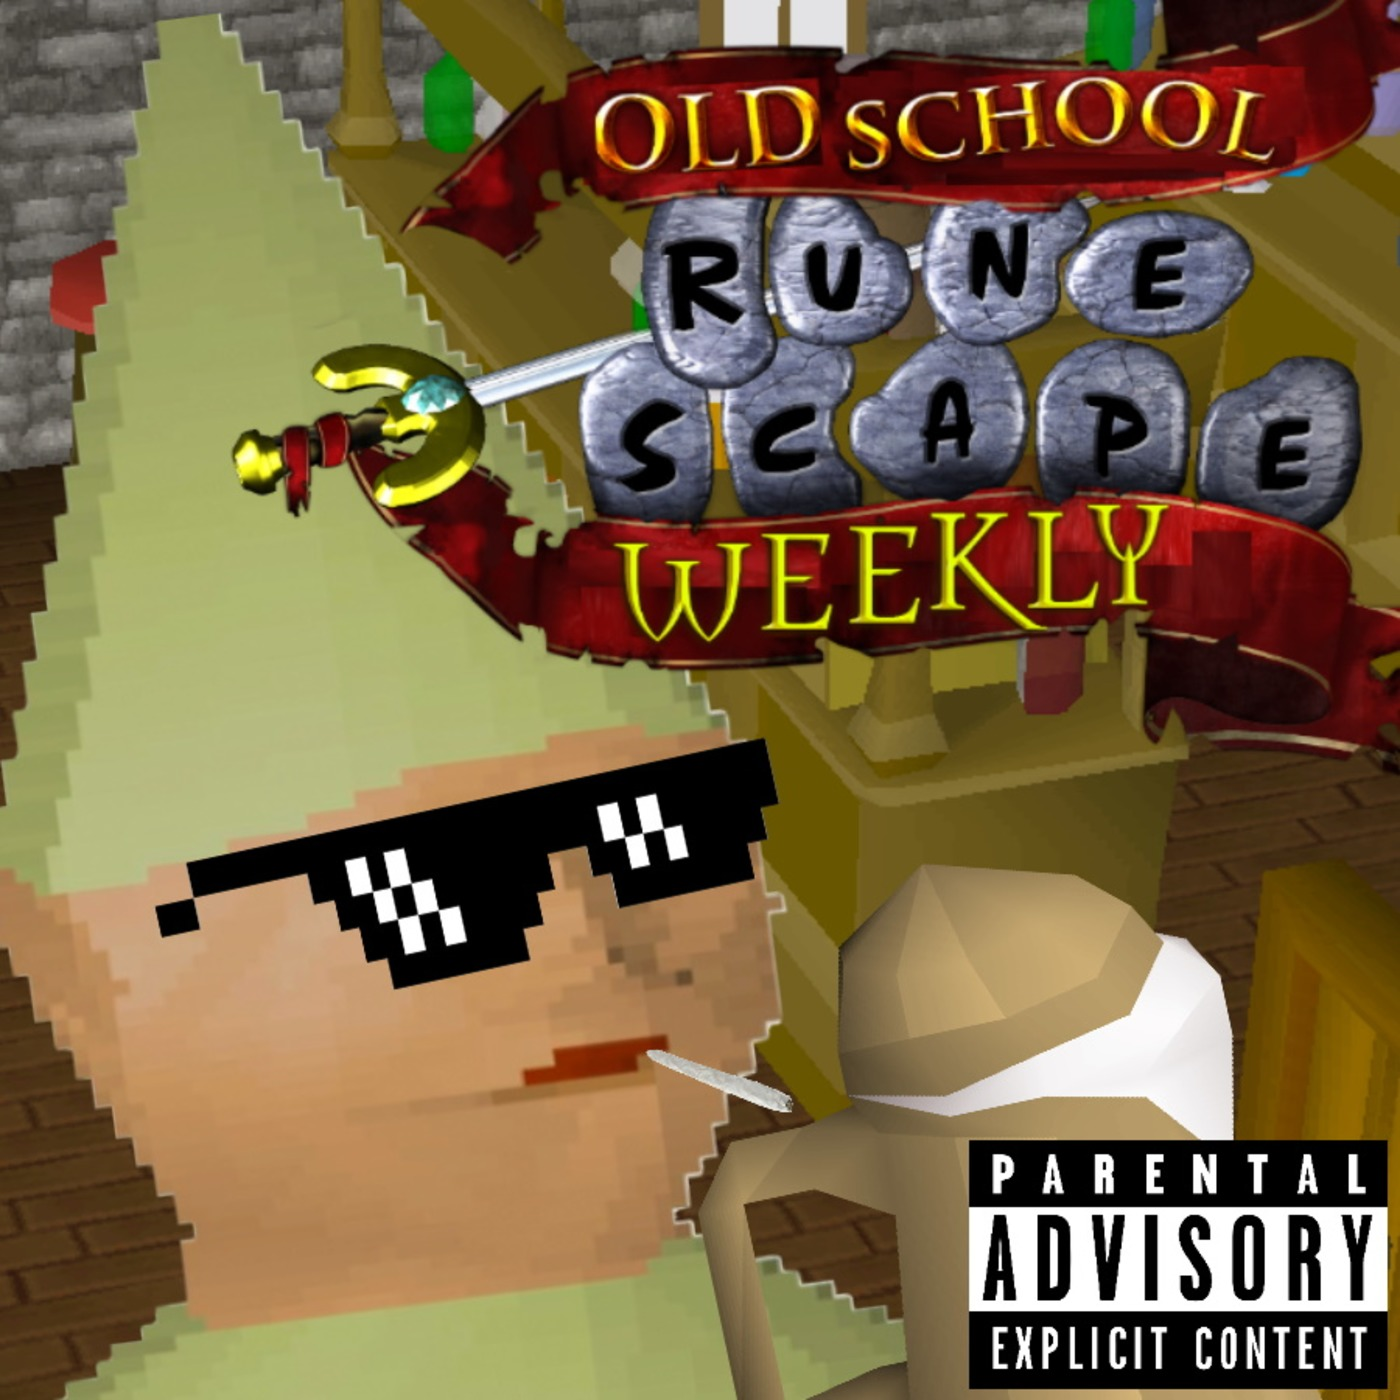 Old School Runescape Weekly: Episode 14